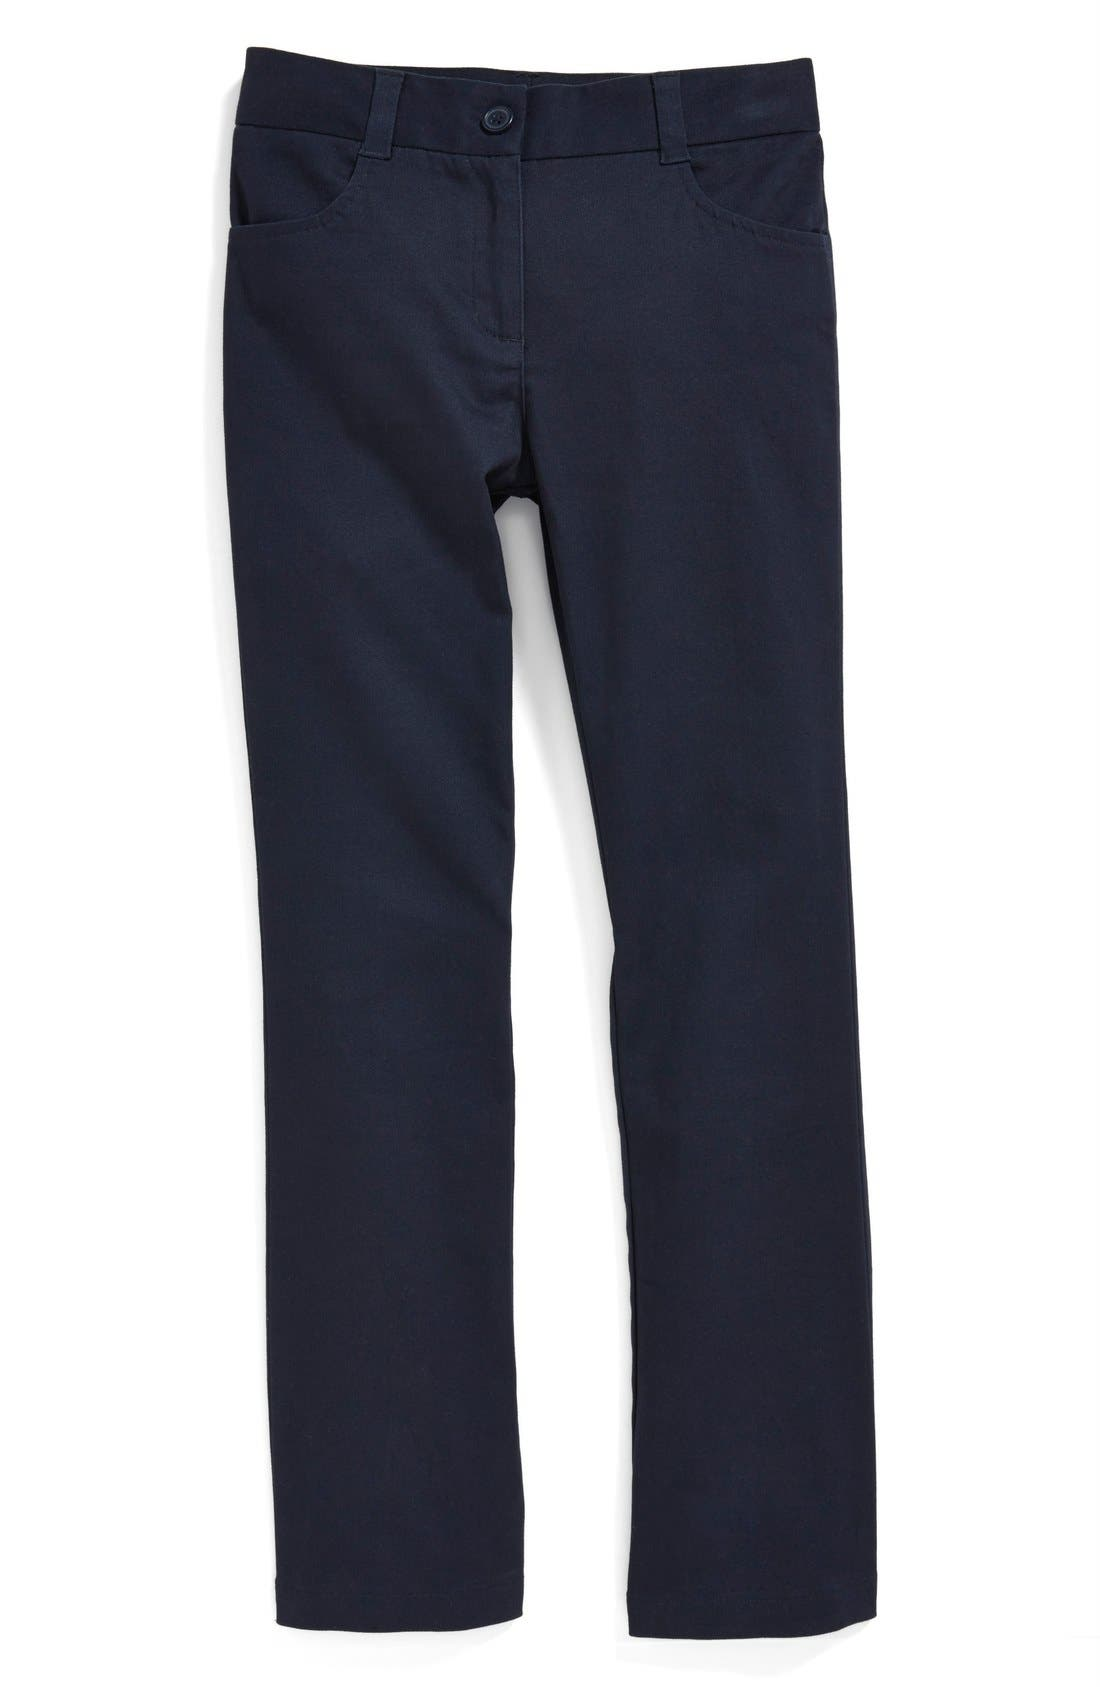 Main Image - Nordstrom Straight Fit Stretch Cotton Pants (Little Girls & Big Girls) (Online Only)